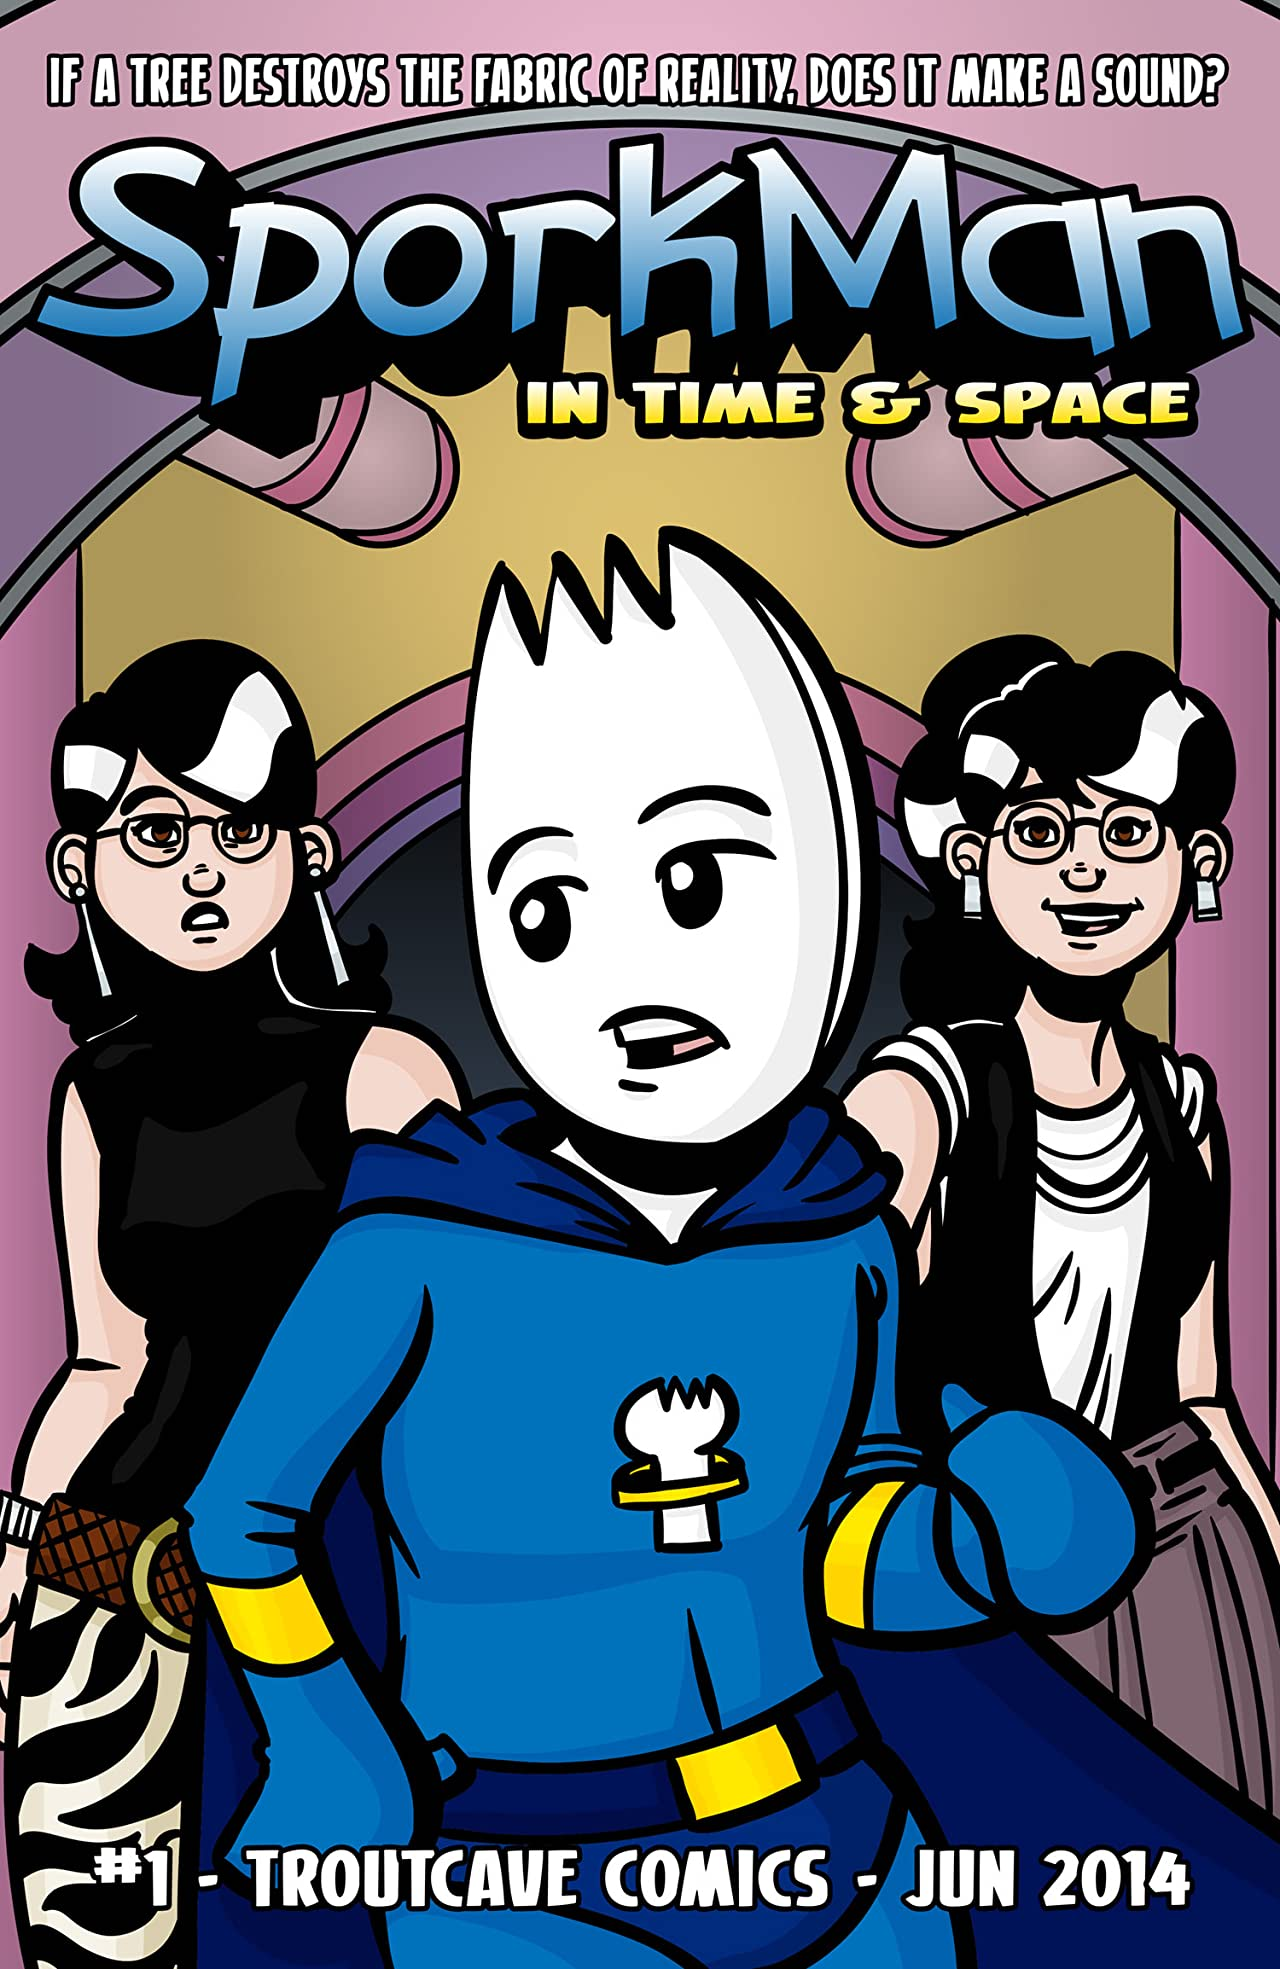 Sporkman In Time And Space #1